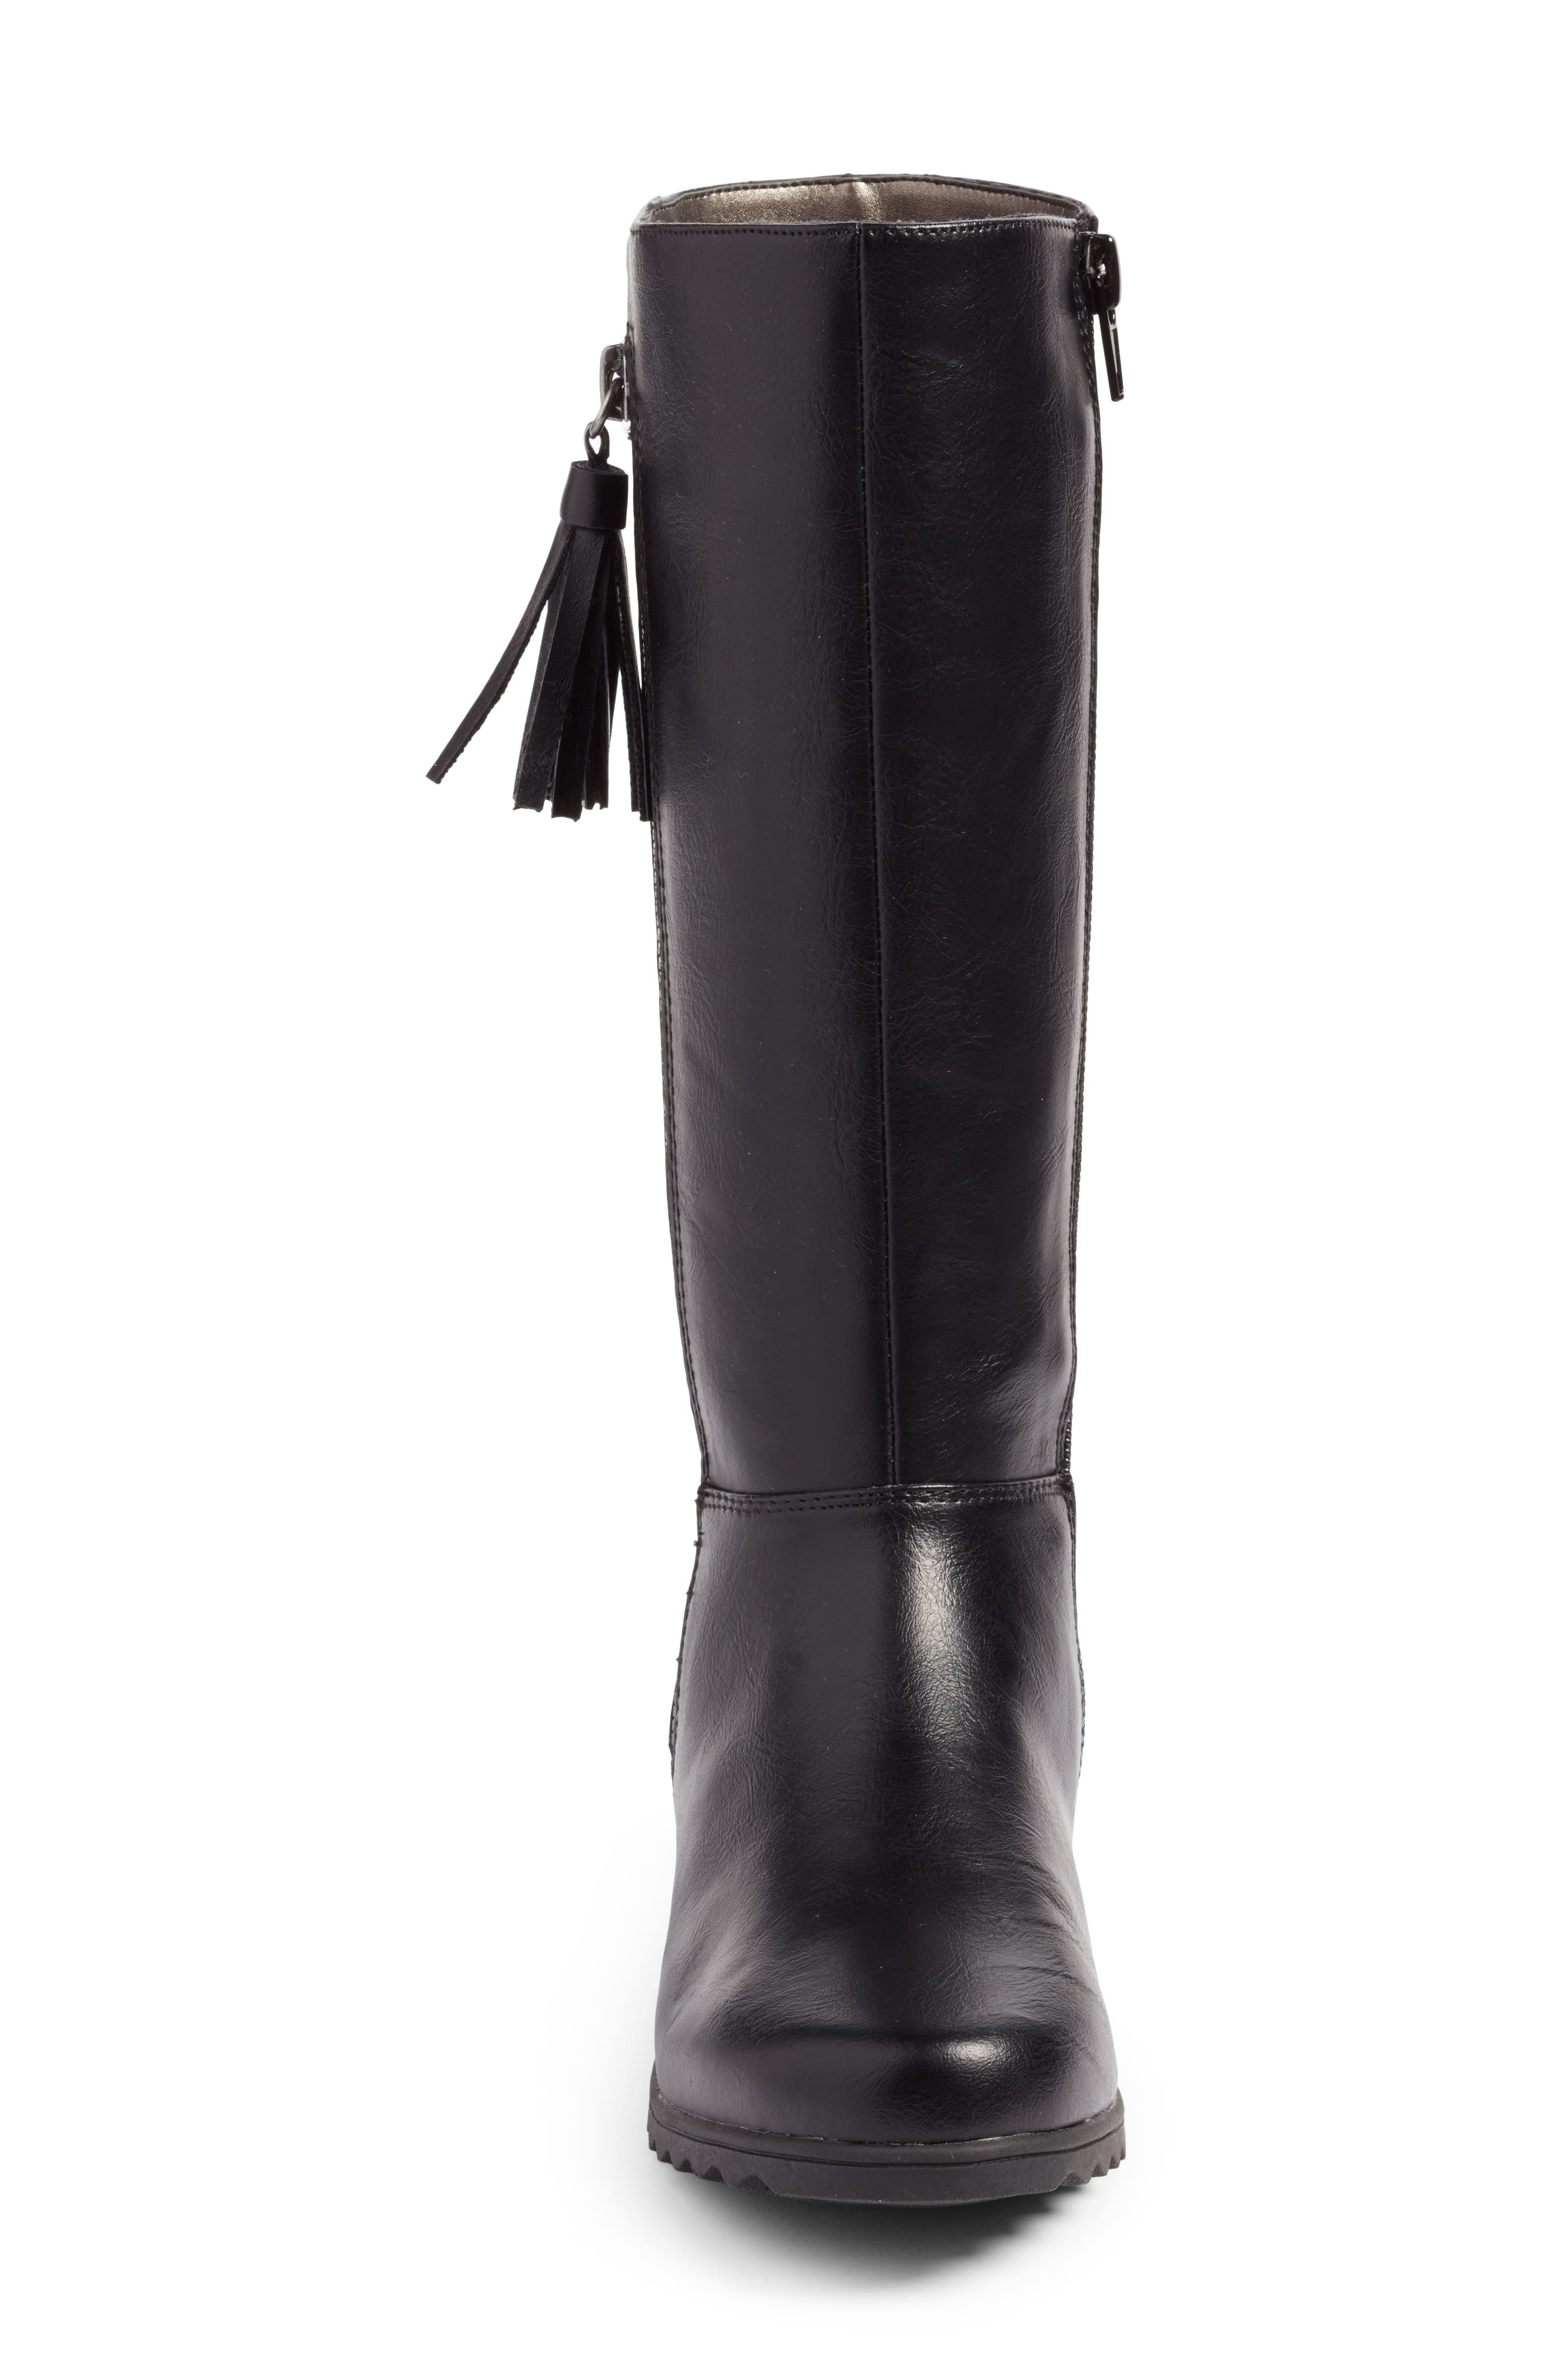 Kelsie Tassel Boot,                             Alternate thumbnail 4, color,                             001